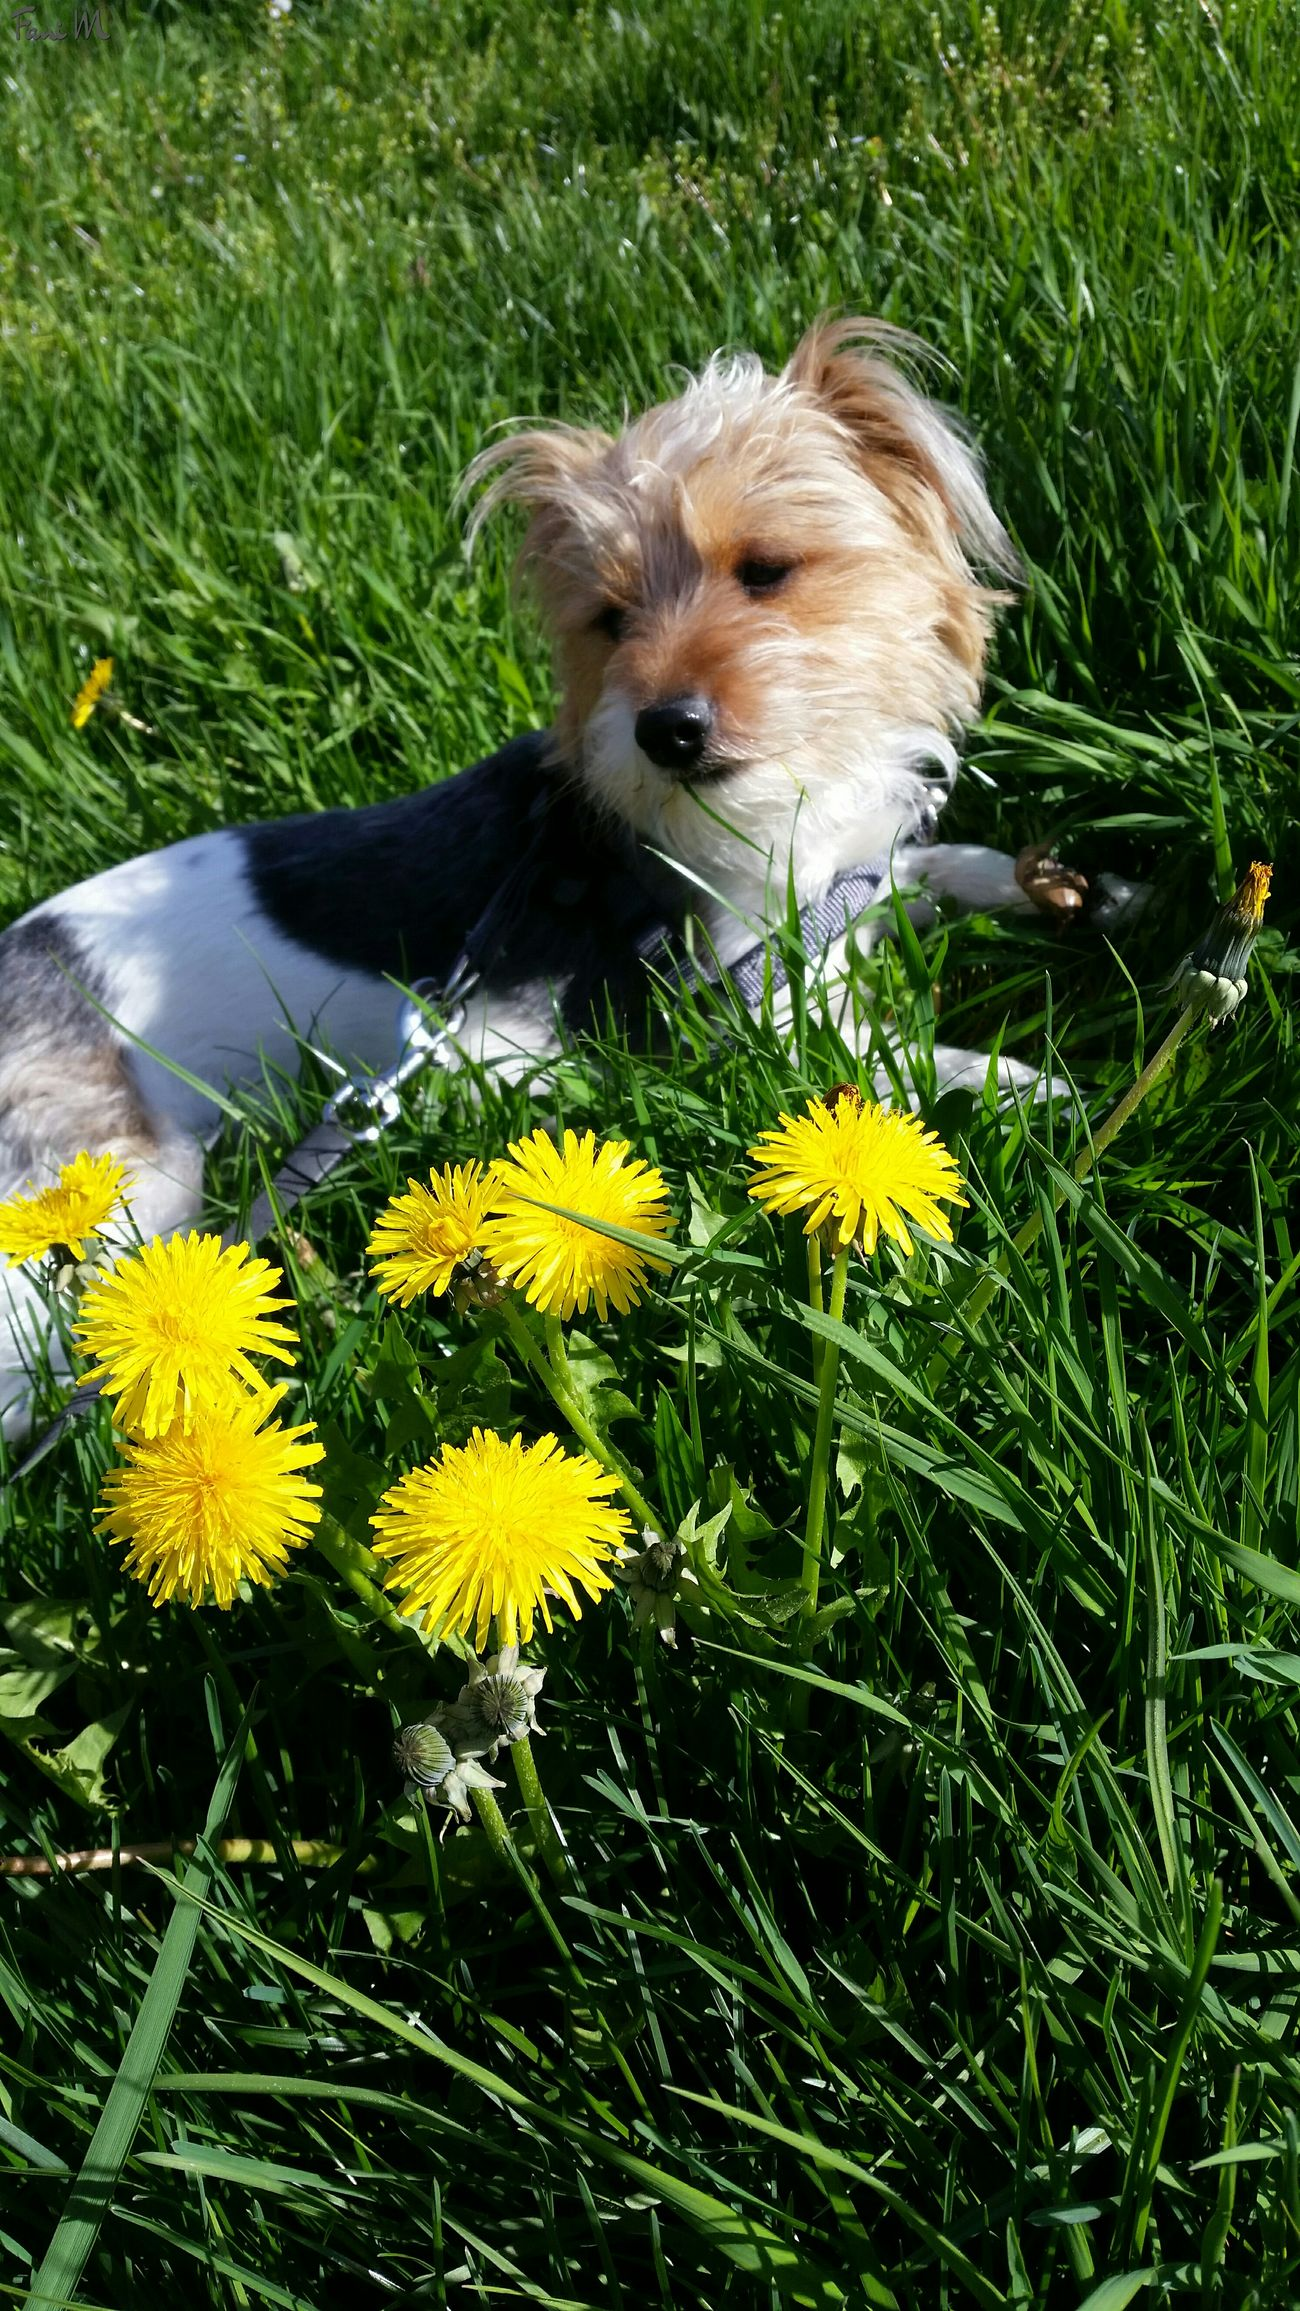 One Animal Animal Themes Flower Outdoors Pets Domestic Animals Loumi Grass Field Beauty In Nature Nature Day Yellow Flower Sunshine Sping Springtime Doggy Dog Dogs Of EyeEm Dog Love Doglover Doggy Love Friend Bestfriend Photography